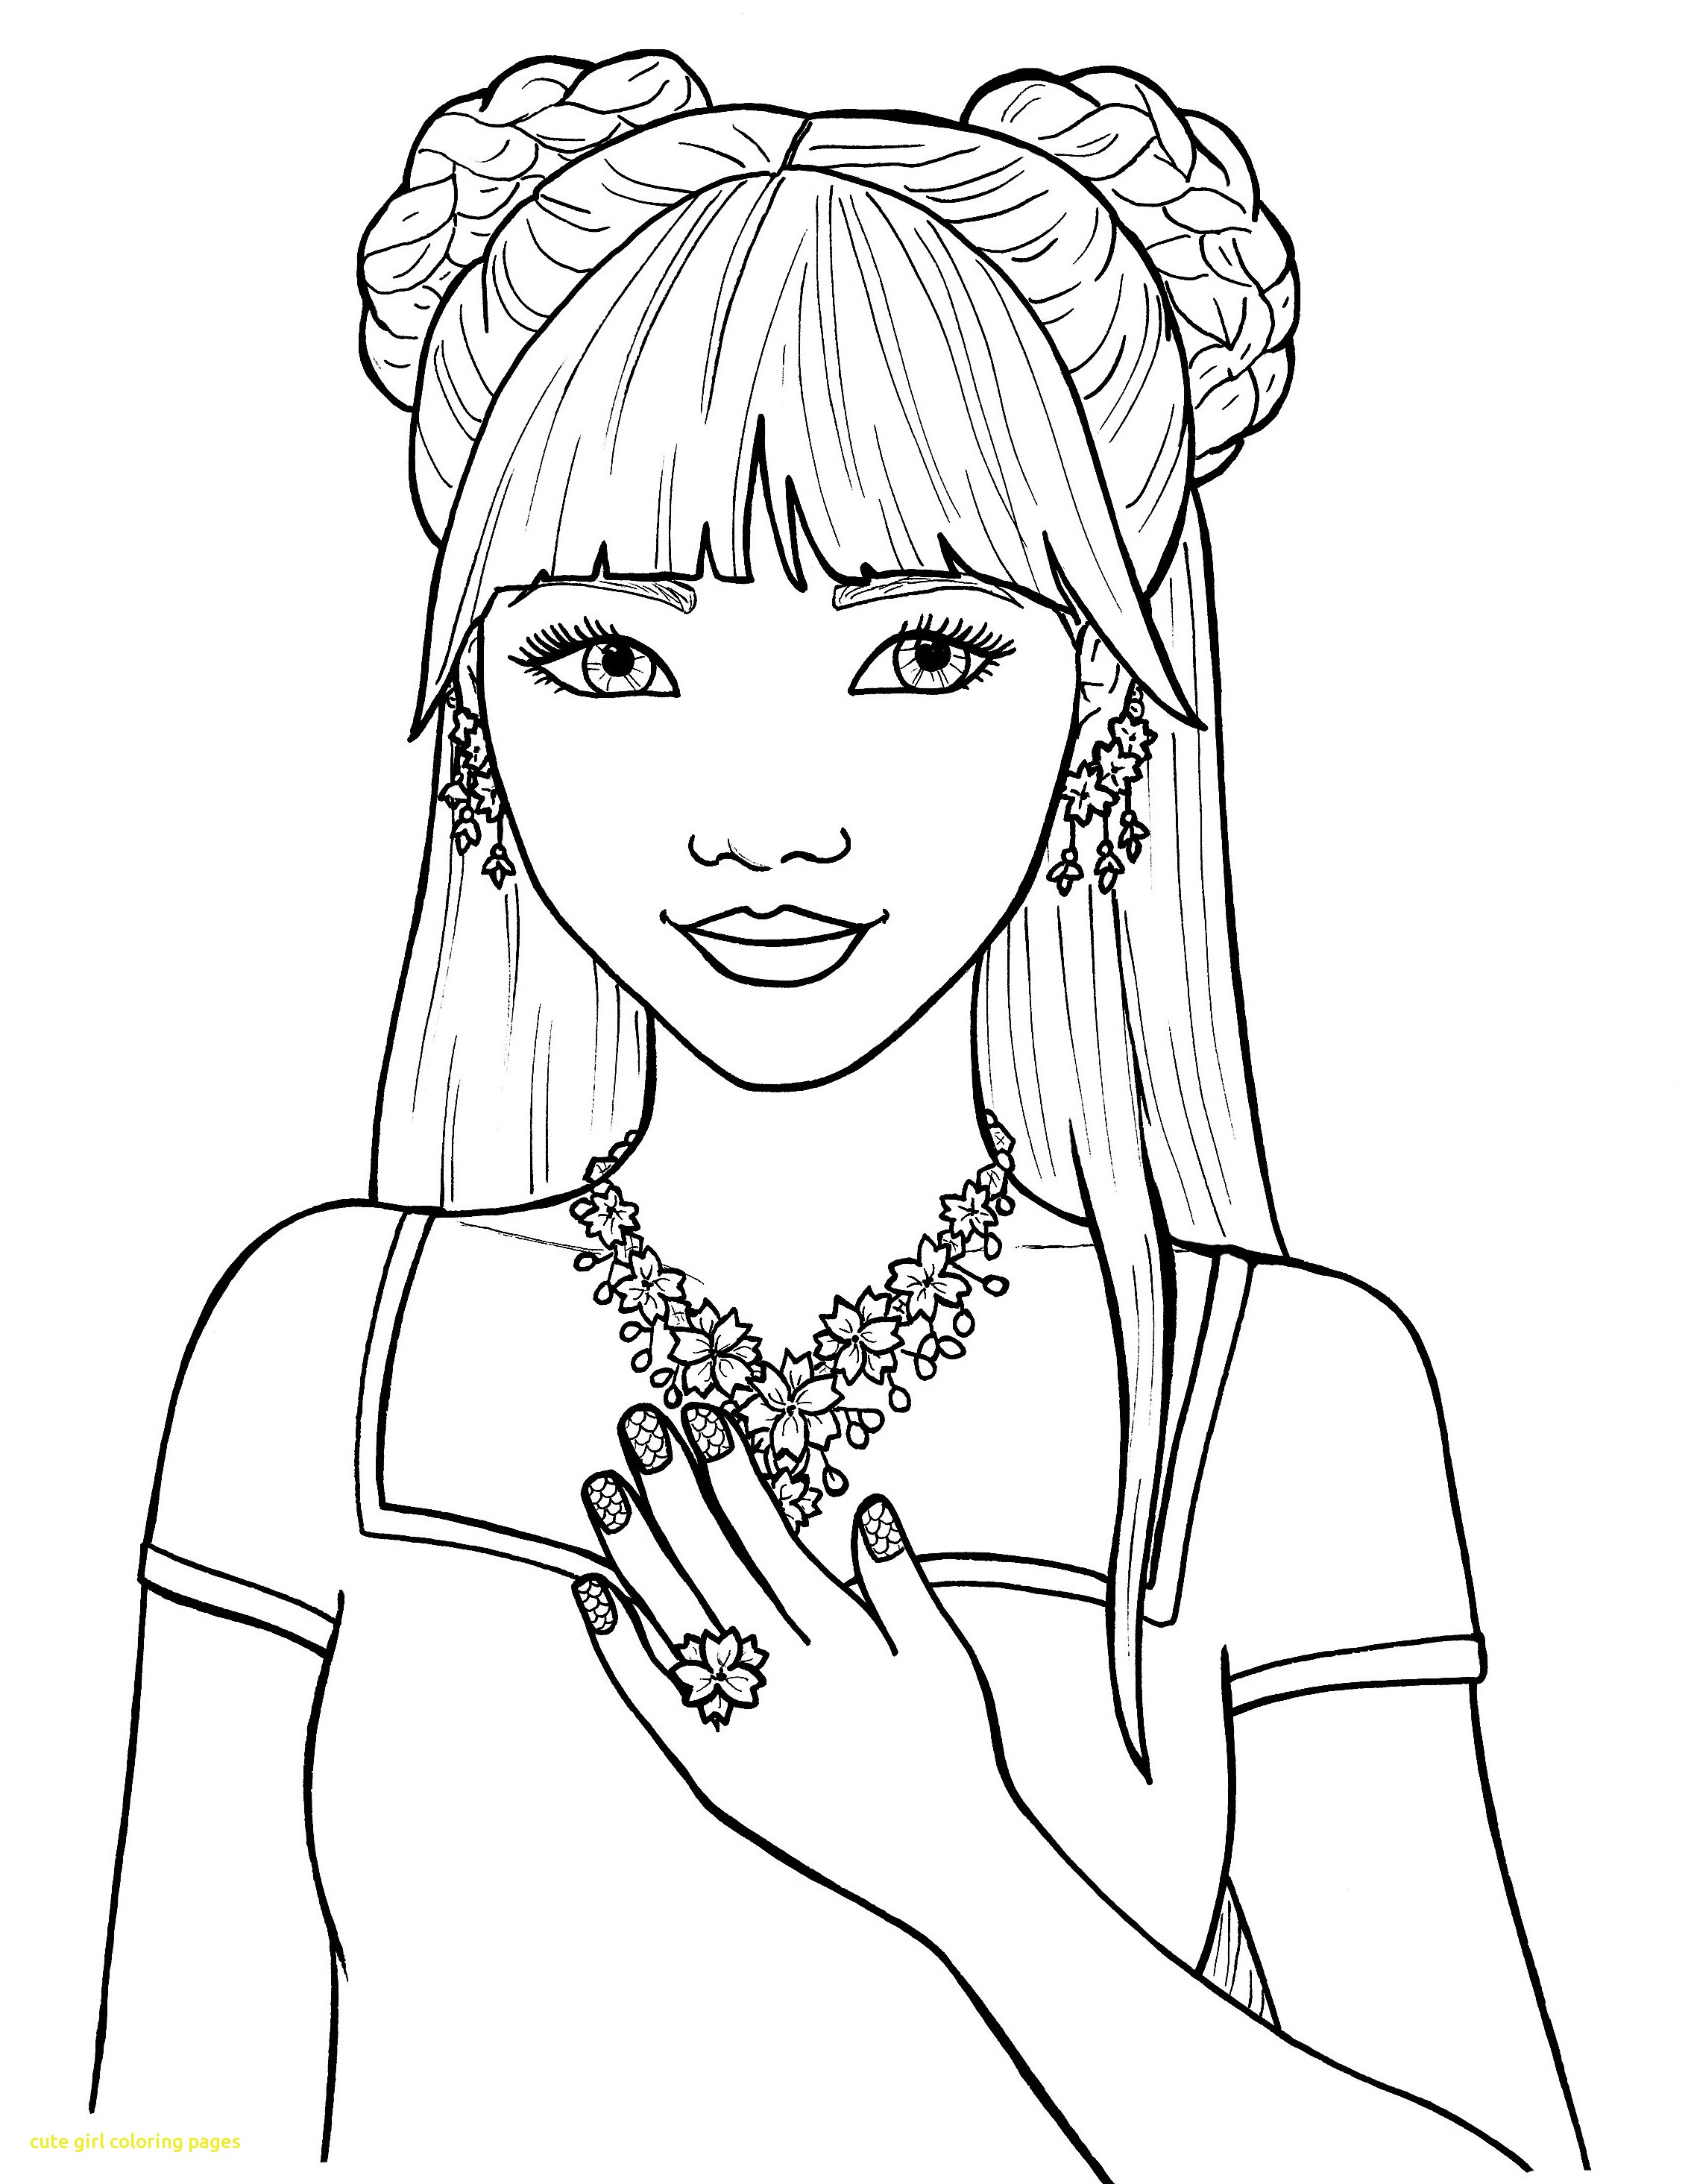 people coloring coloring pages for girls best coloring pages for kids people coloring